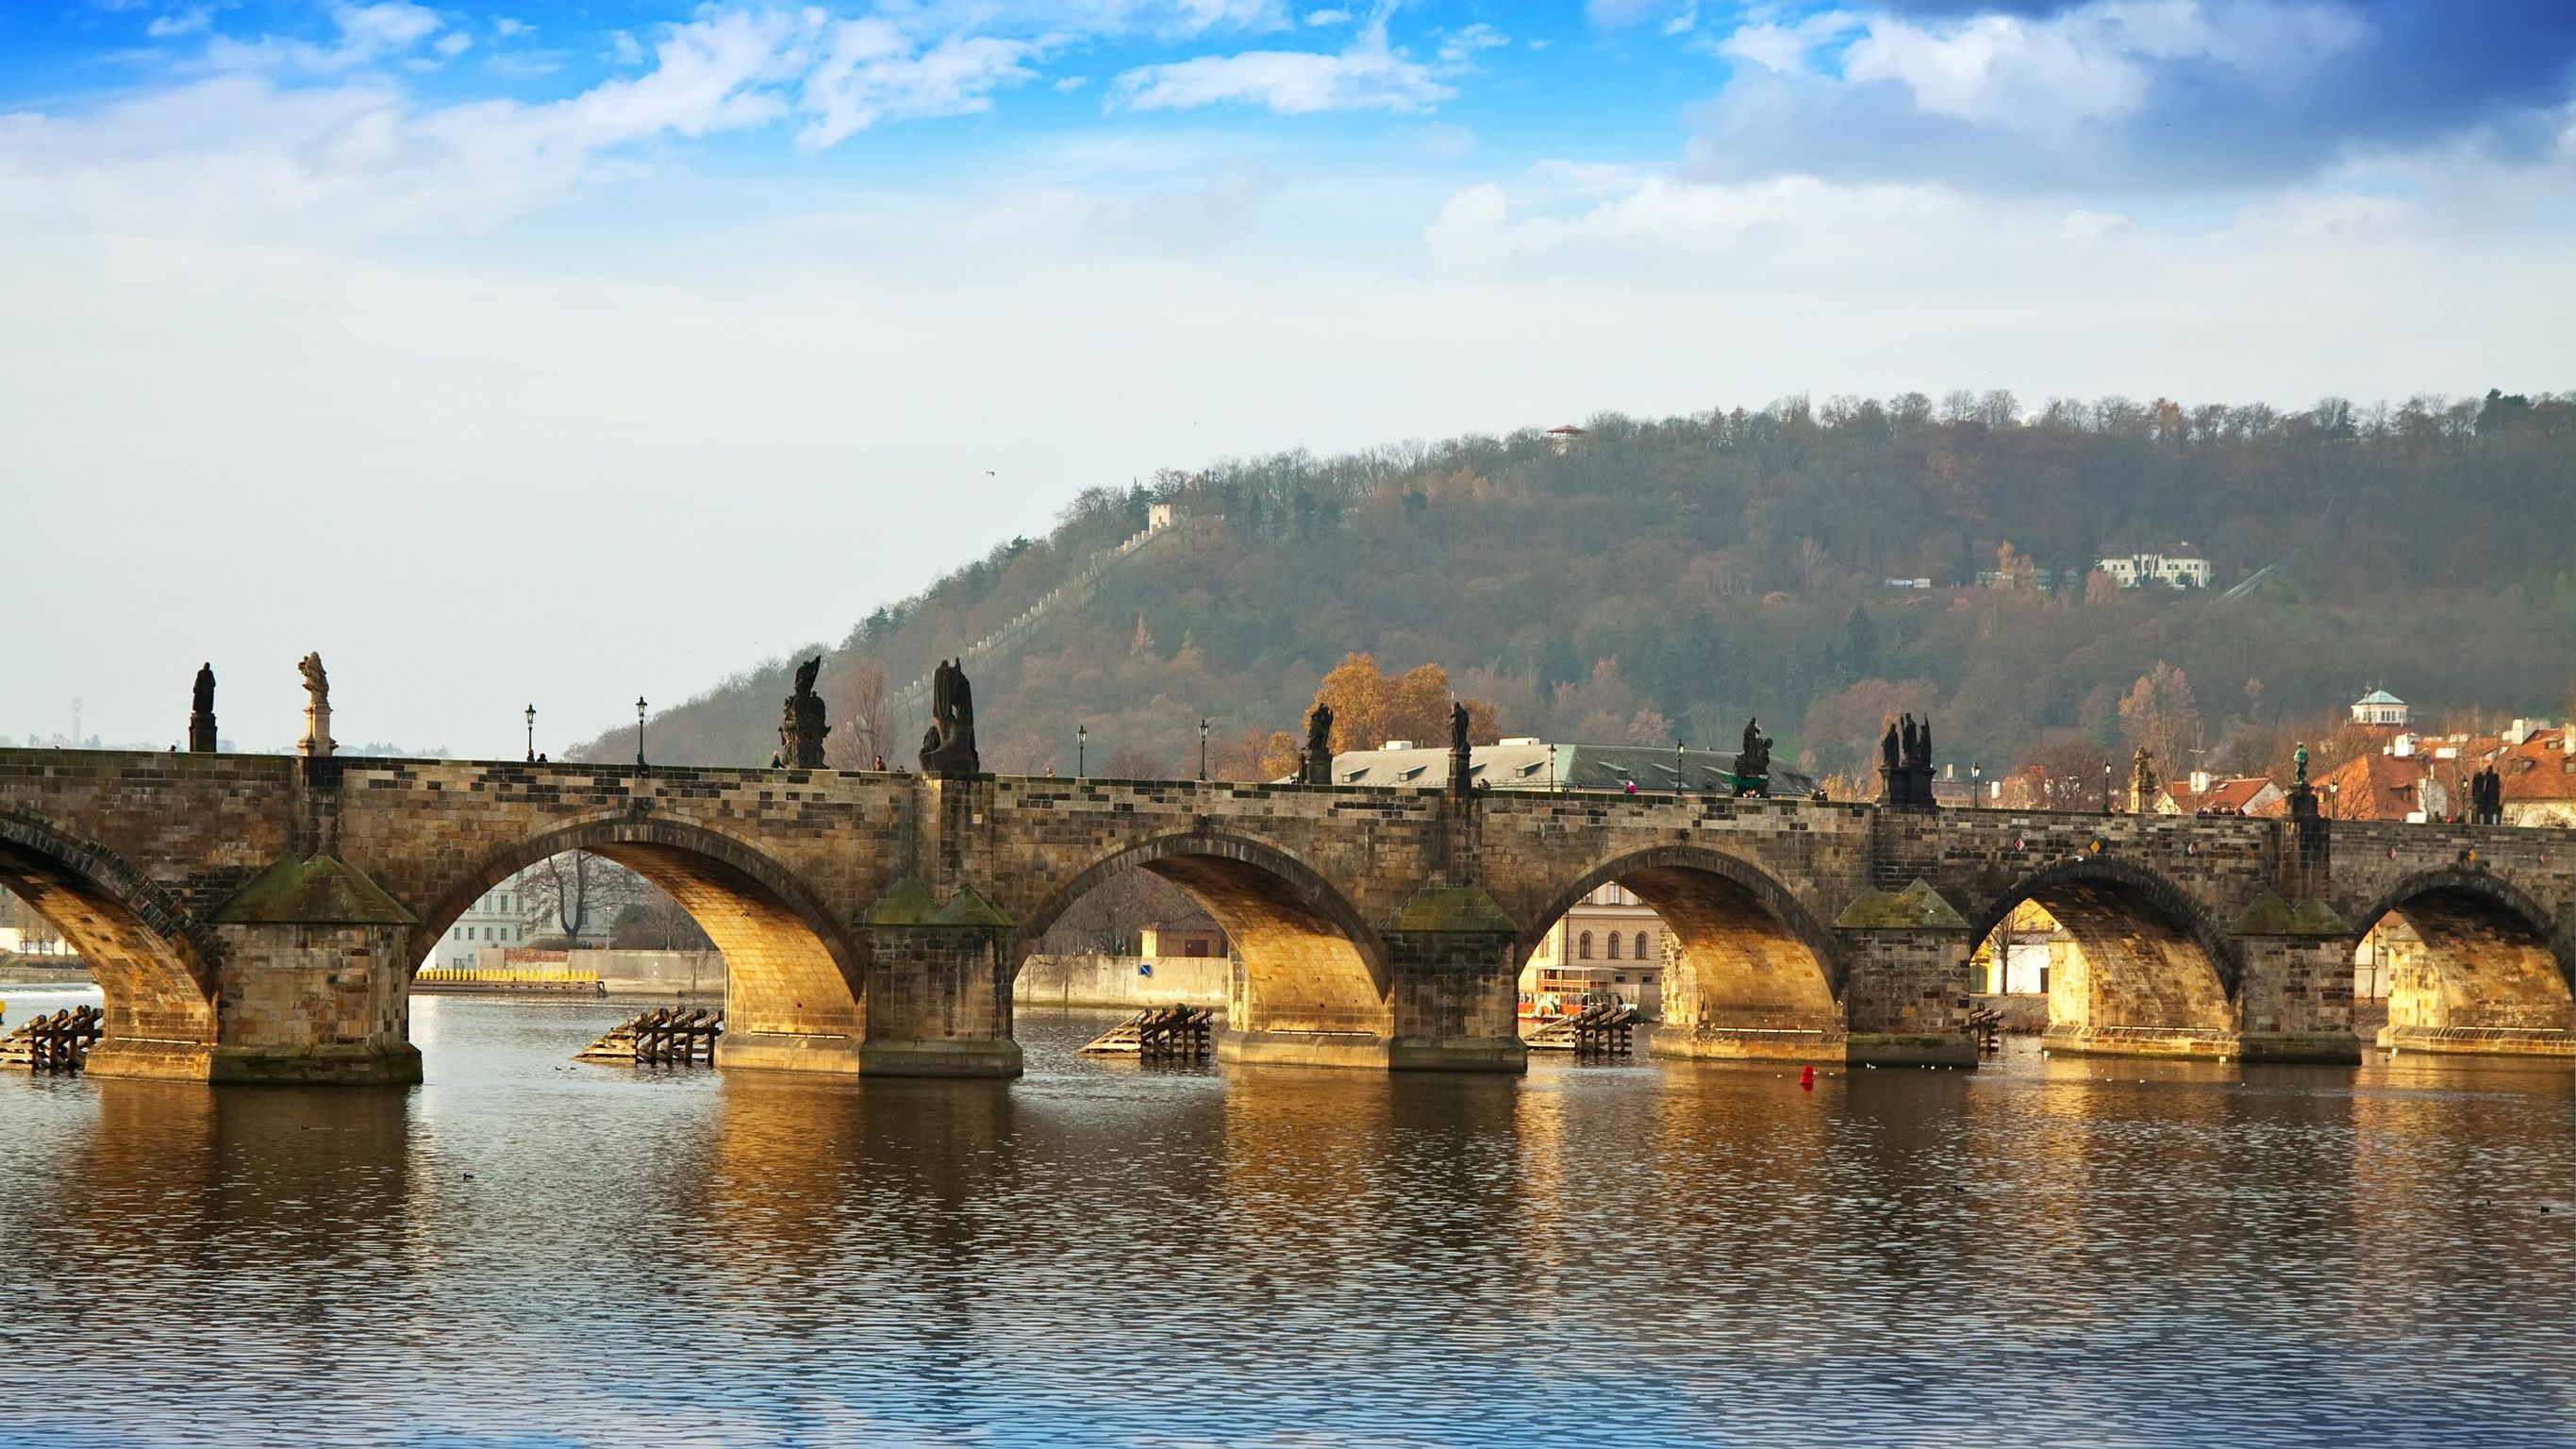 SEE & DO: CHARLES BRIDGE